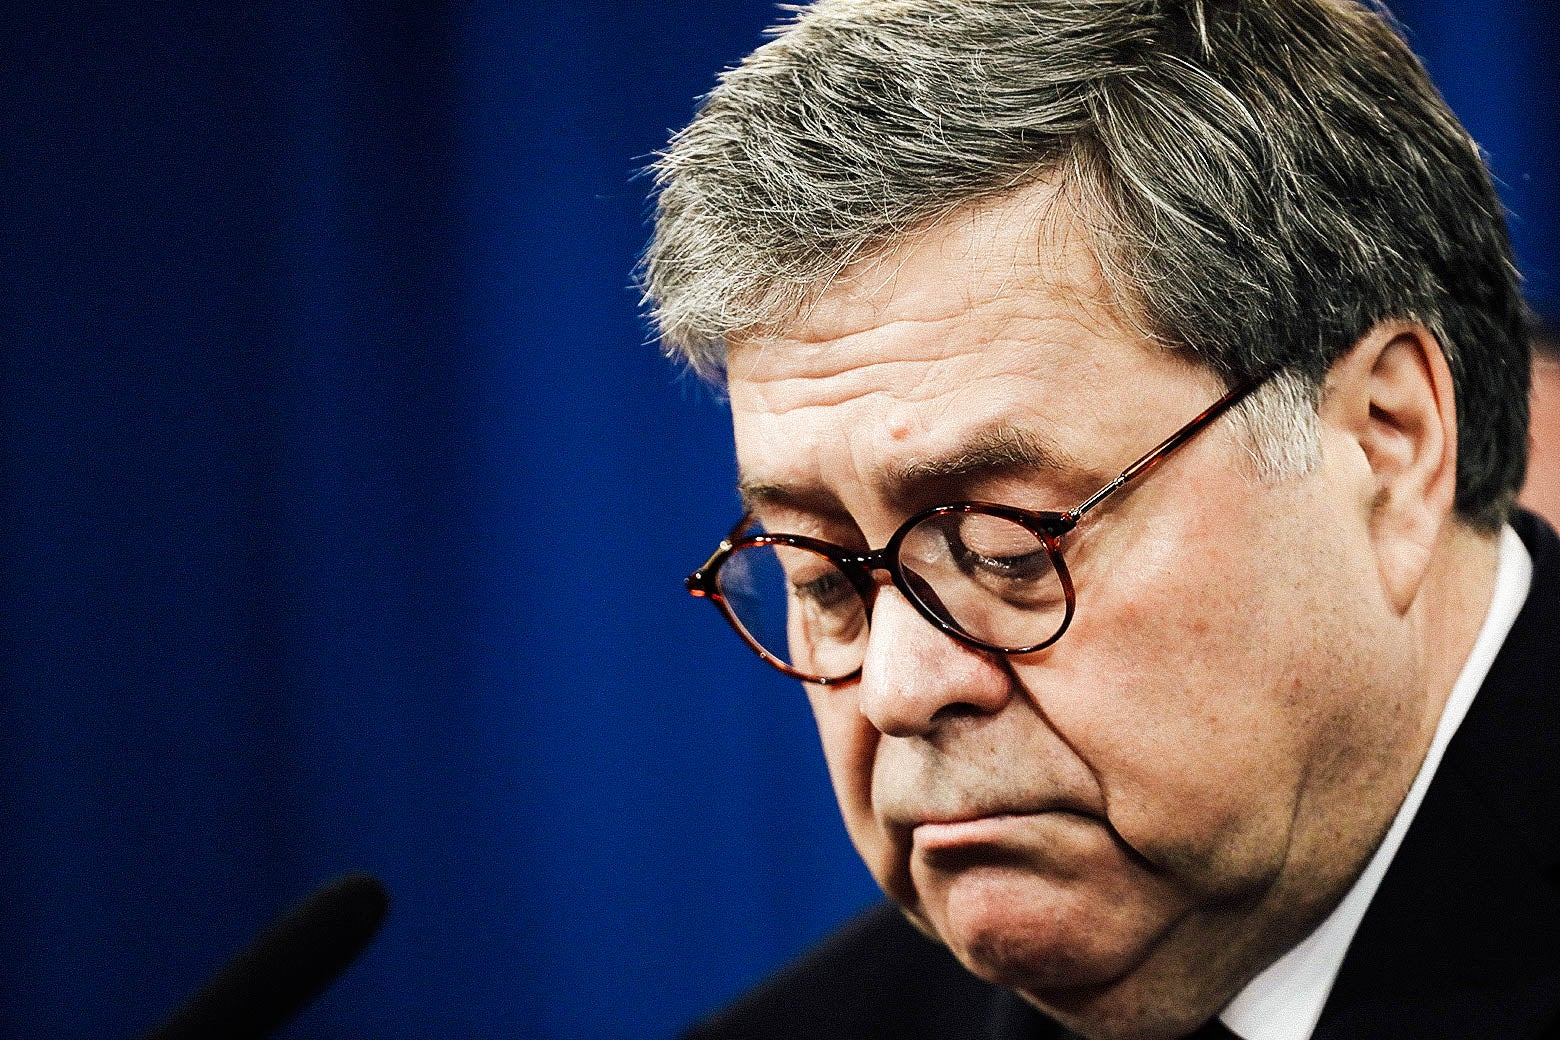 Attorney General William Barr speaks during a press conference about the Mueller report.